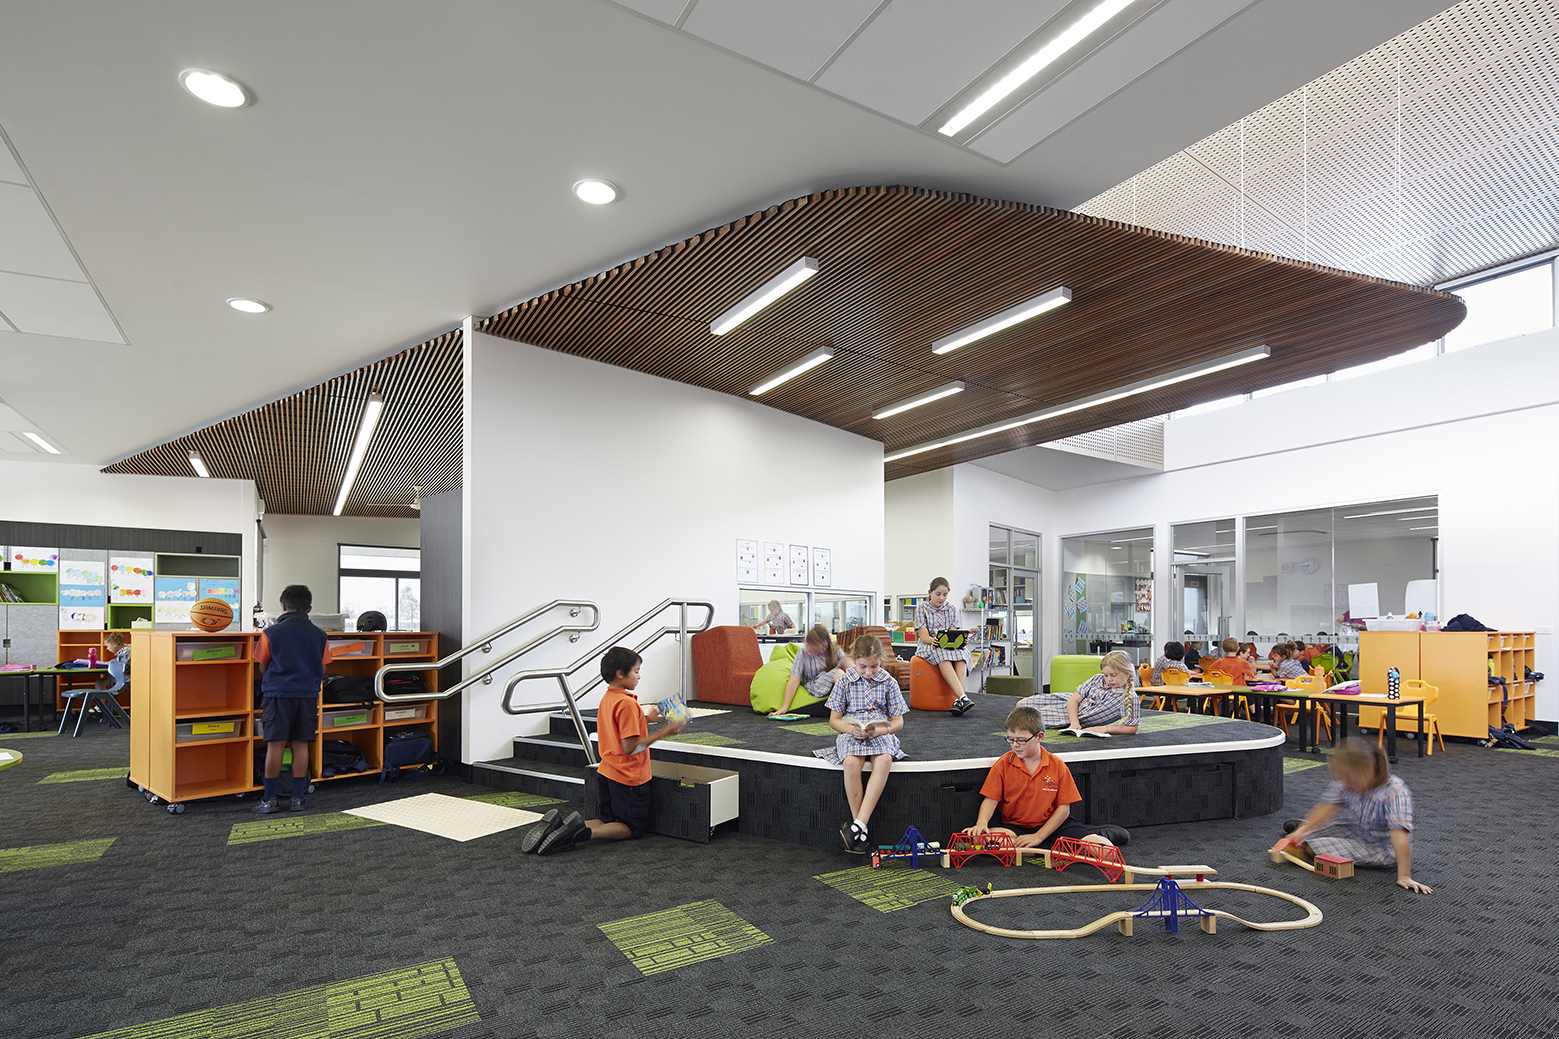 Our Lady Of The Southern Cross Primary School Baldasso Cortese Architects Archdaily